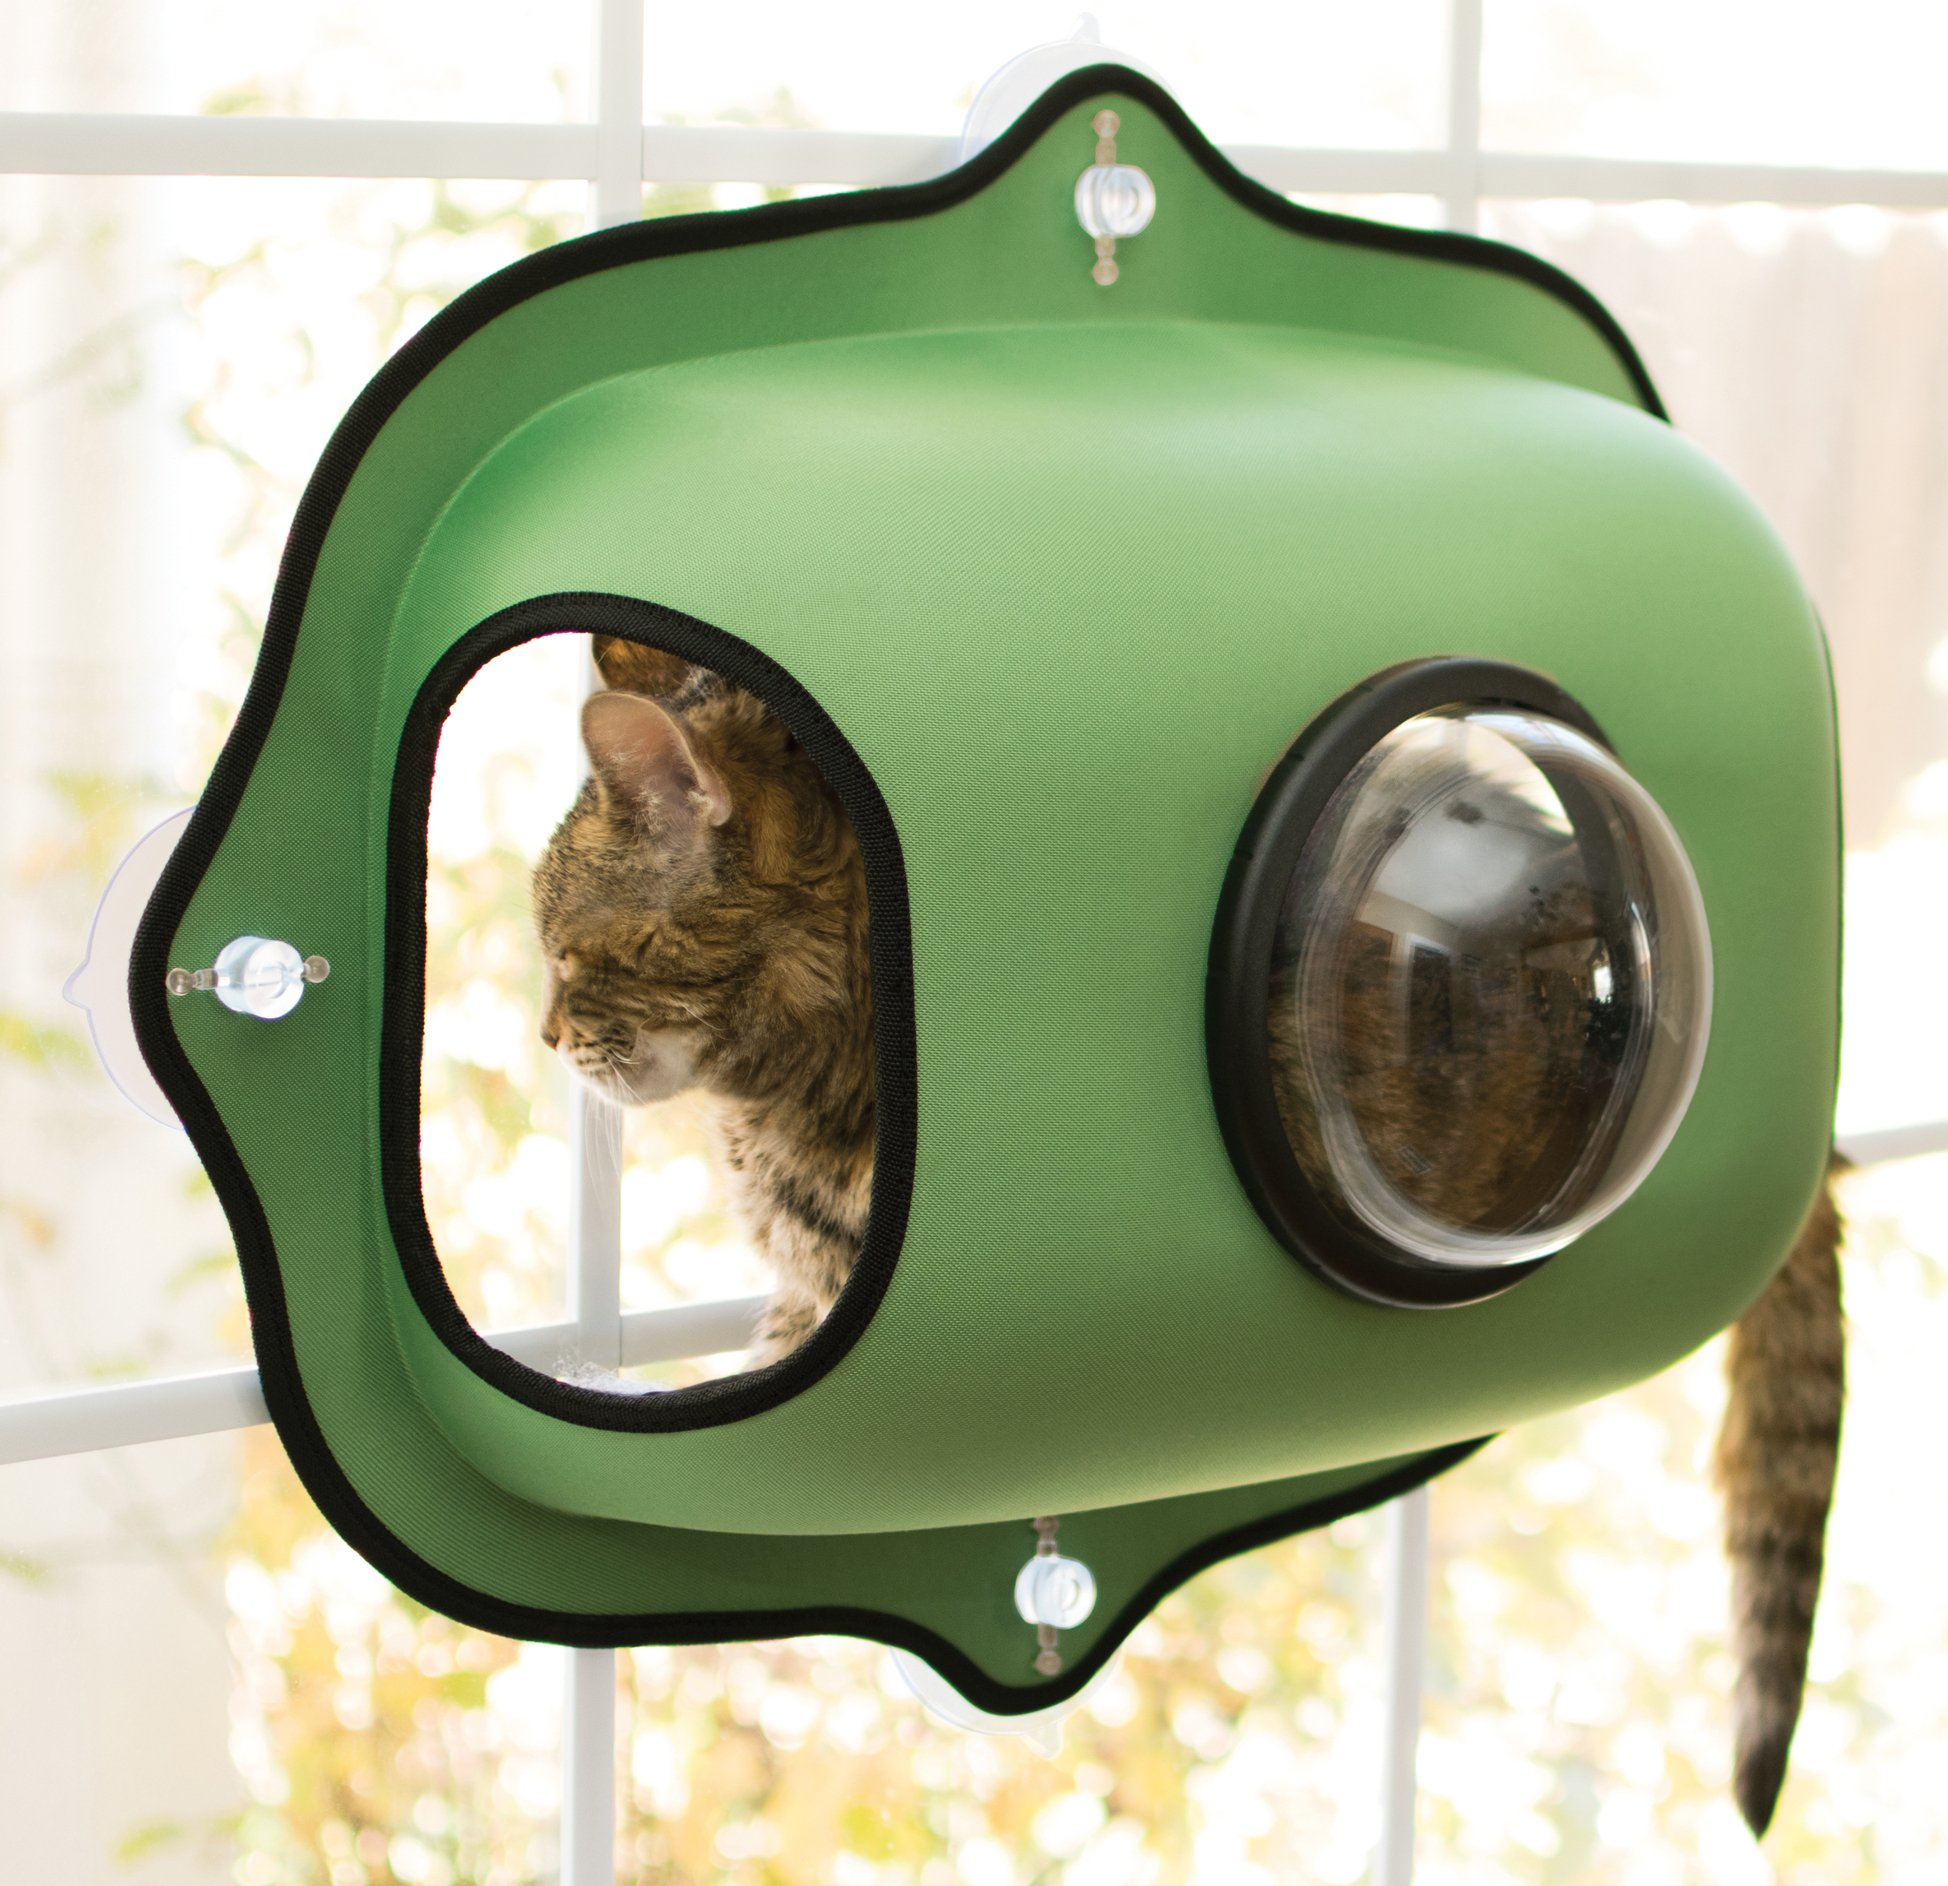 K&H Pet Products EZ Mount Window Bubble Pod Green 27'' x 20'' Kitty Sill by K&H Pet Products (Image #1)